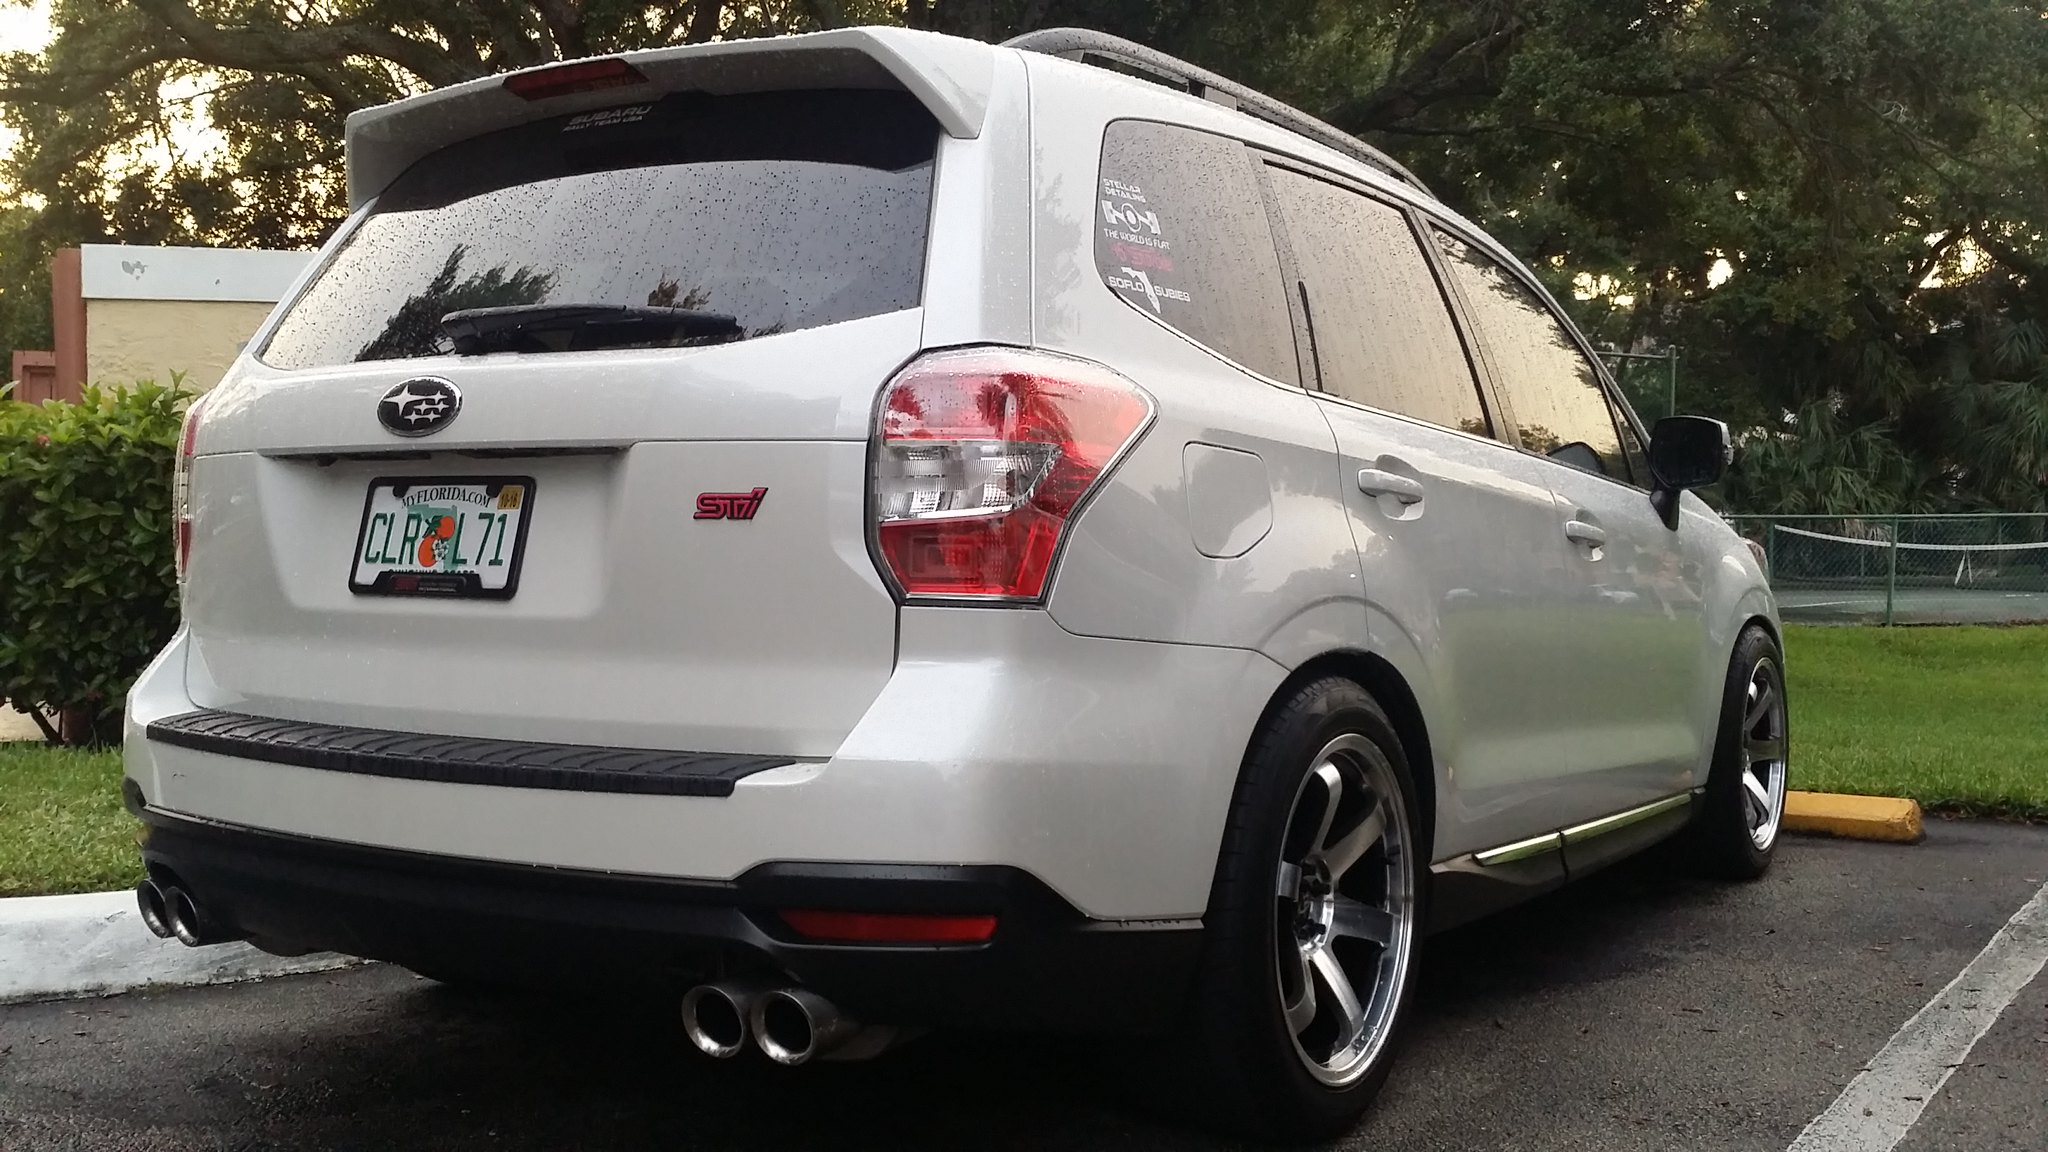 Subaru Forester Owners Forum STi EXHAUST ON FA20 Forester